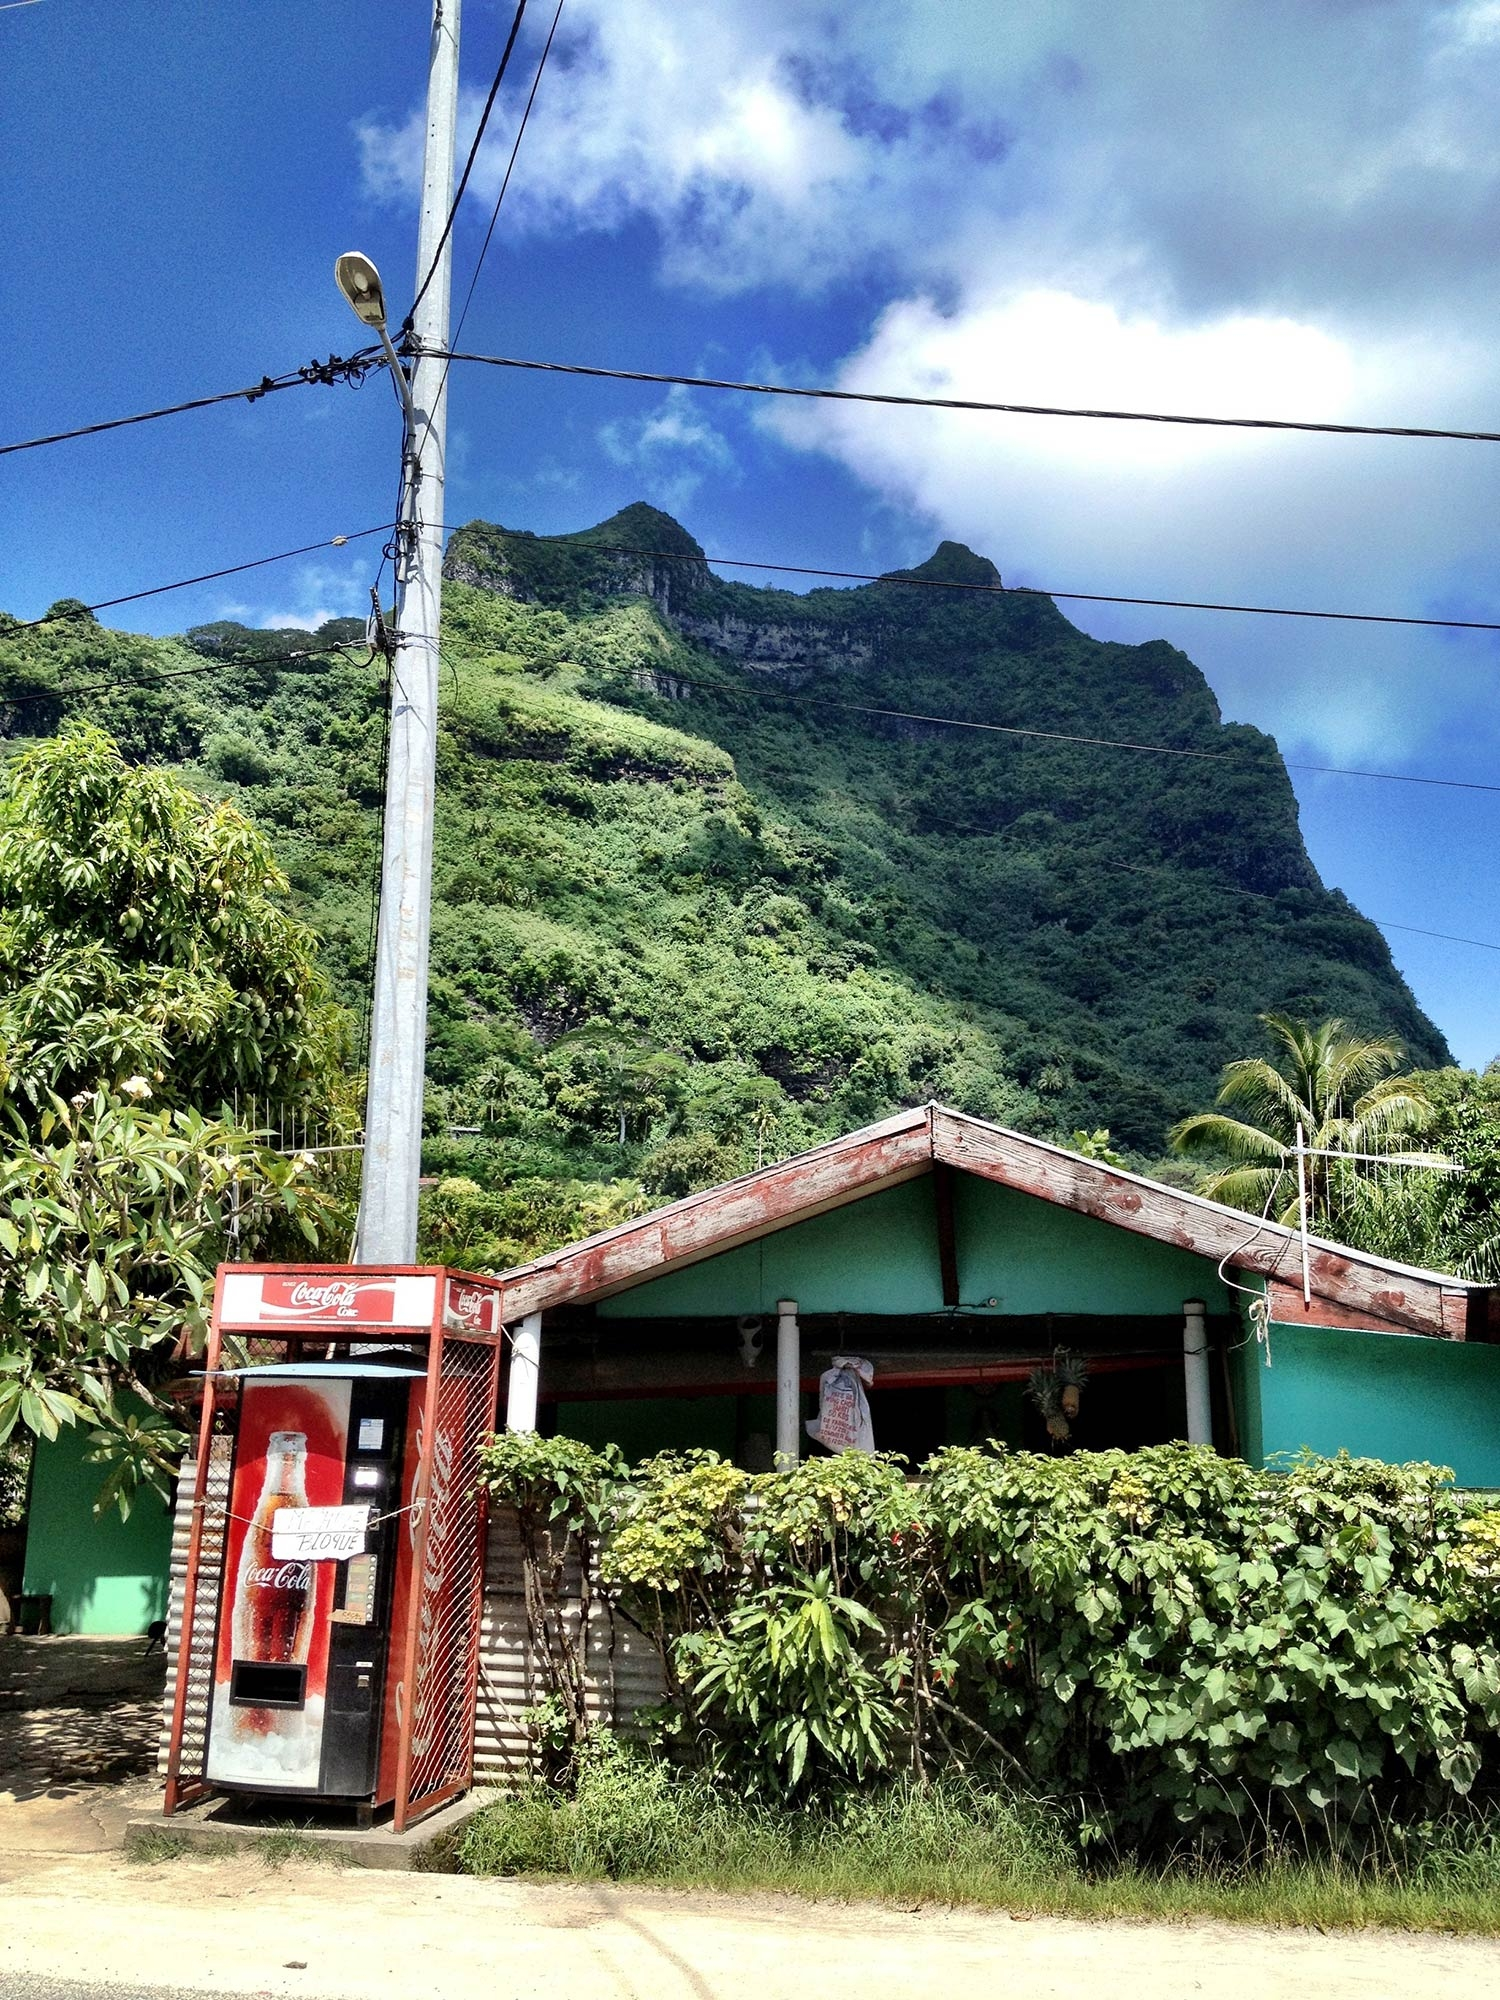 A turquoise building with red trims sits behind a faded coca cola machine and beneath a tall mountain